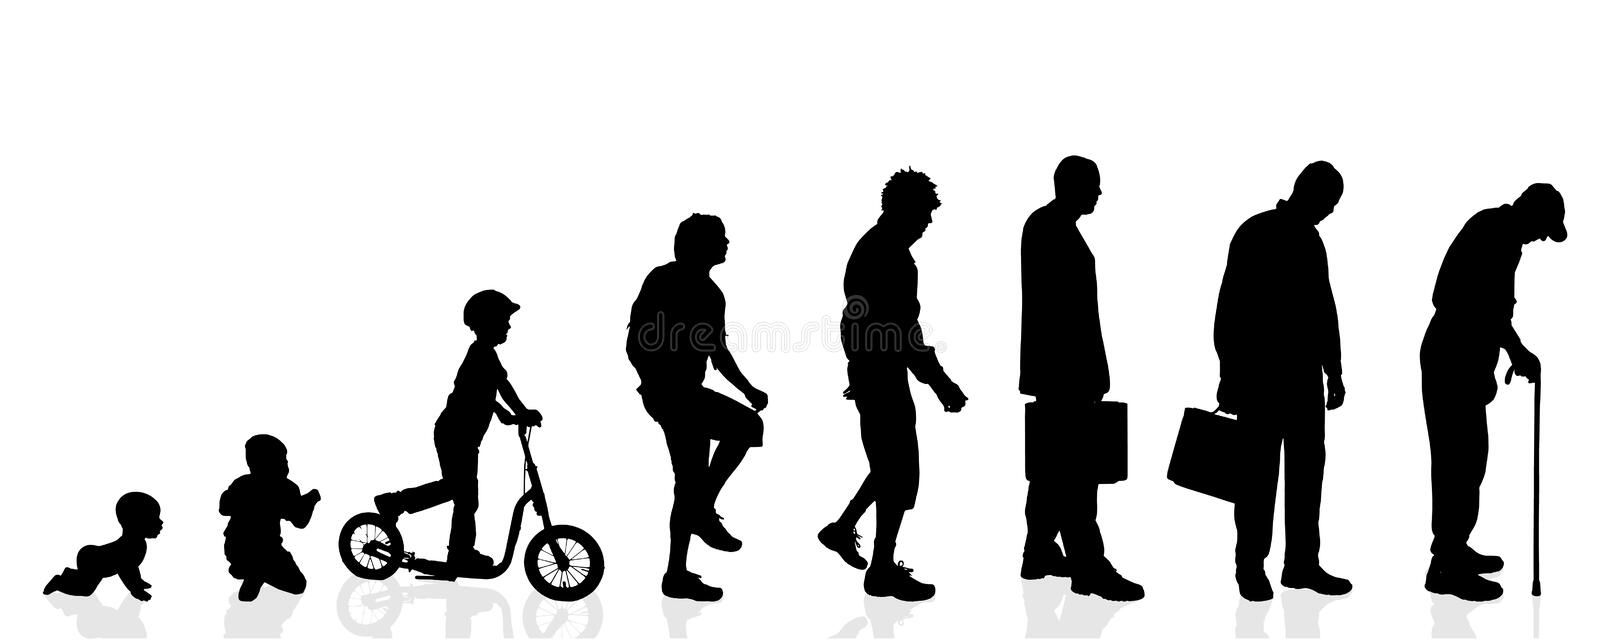 Vector silhouette generation men. royalty free illustration